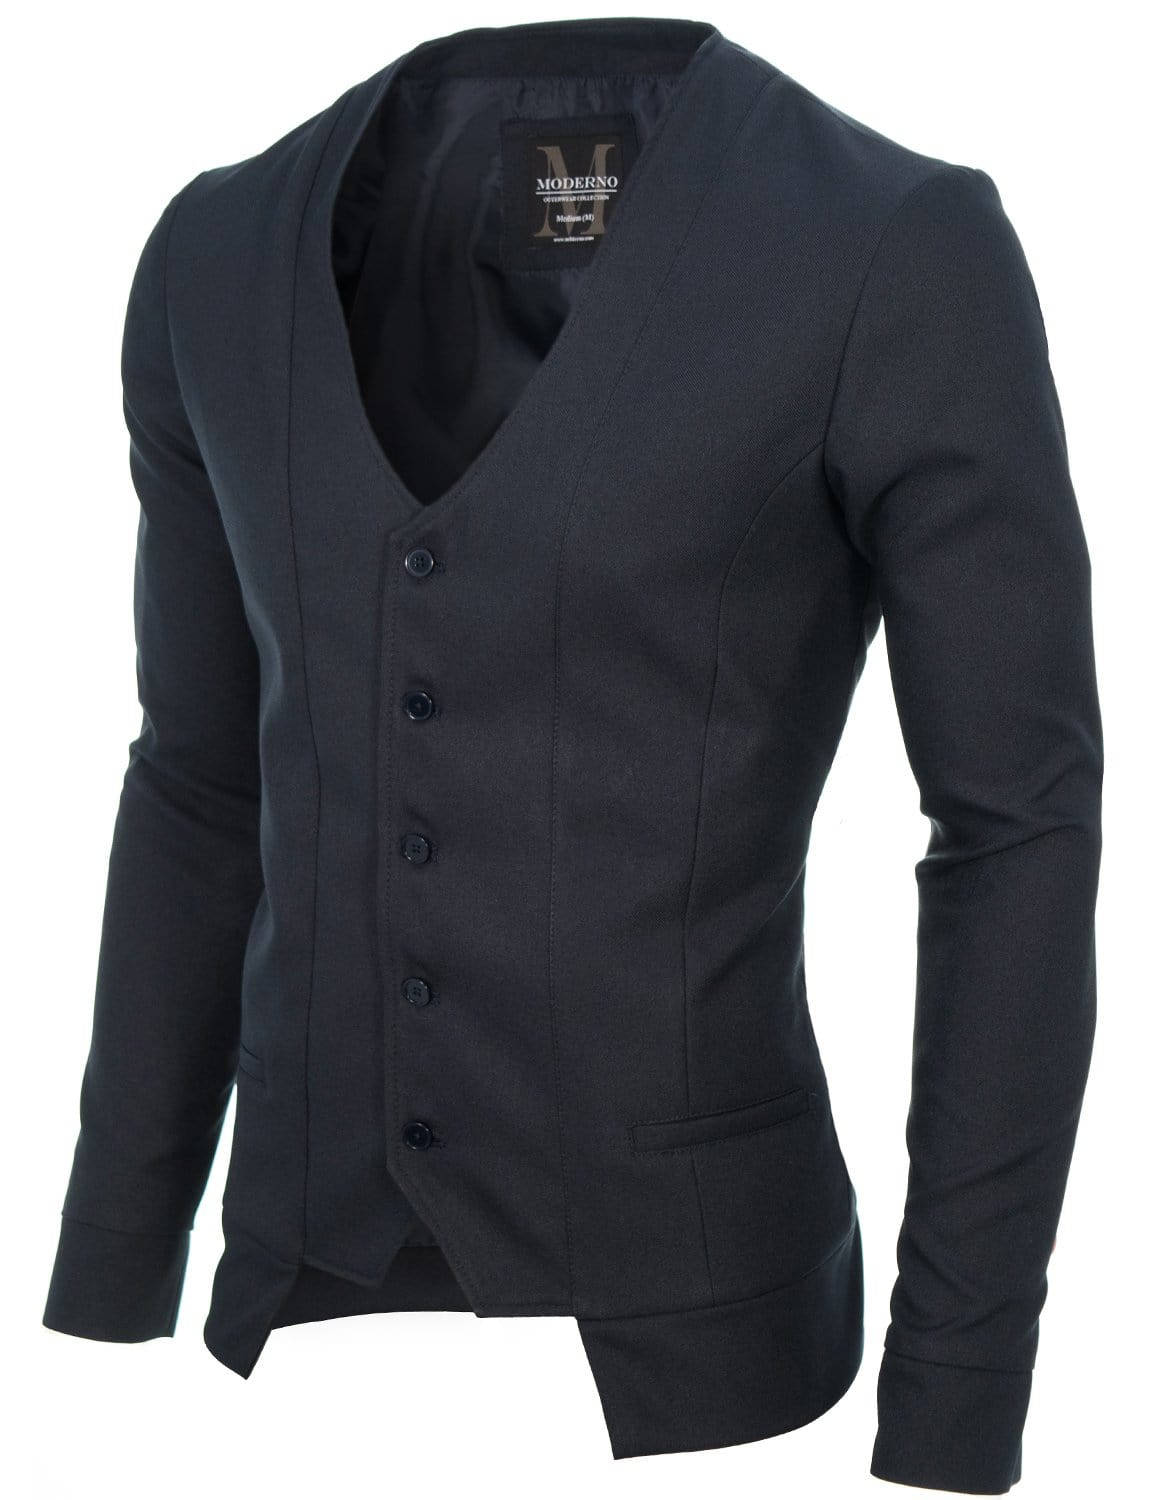 Find mens long sleeve vest at ShopStyle. Shop the latest collection of mens long sleeve vest from the most popular stores - all in one place.